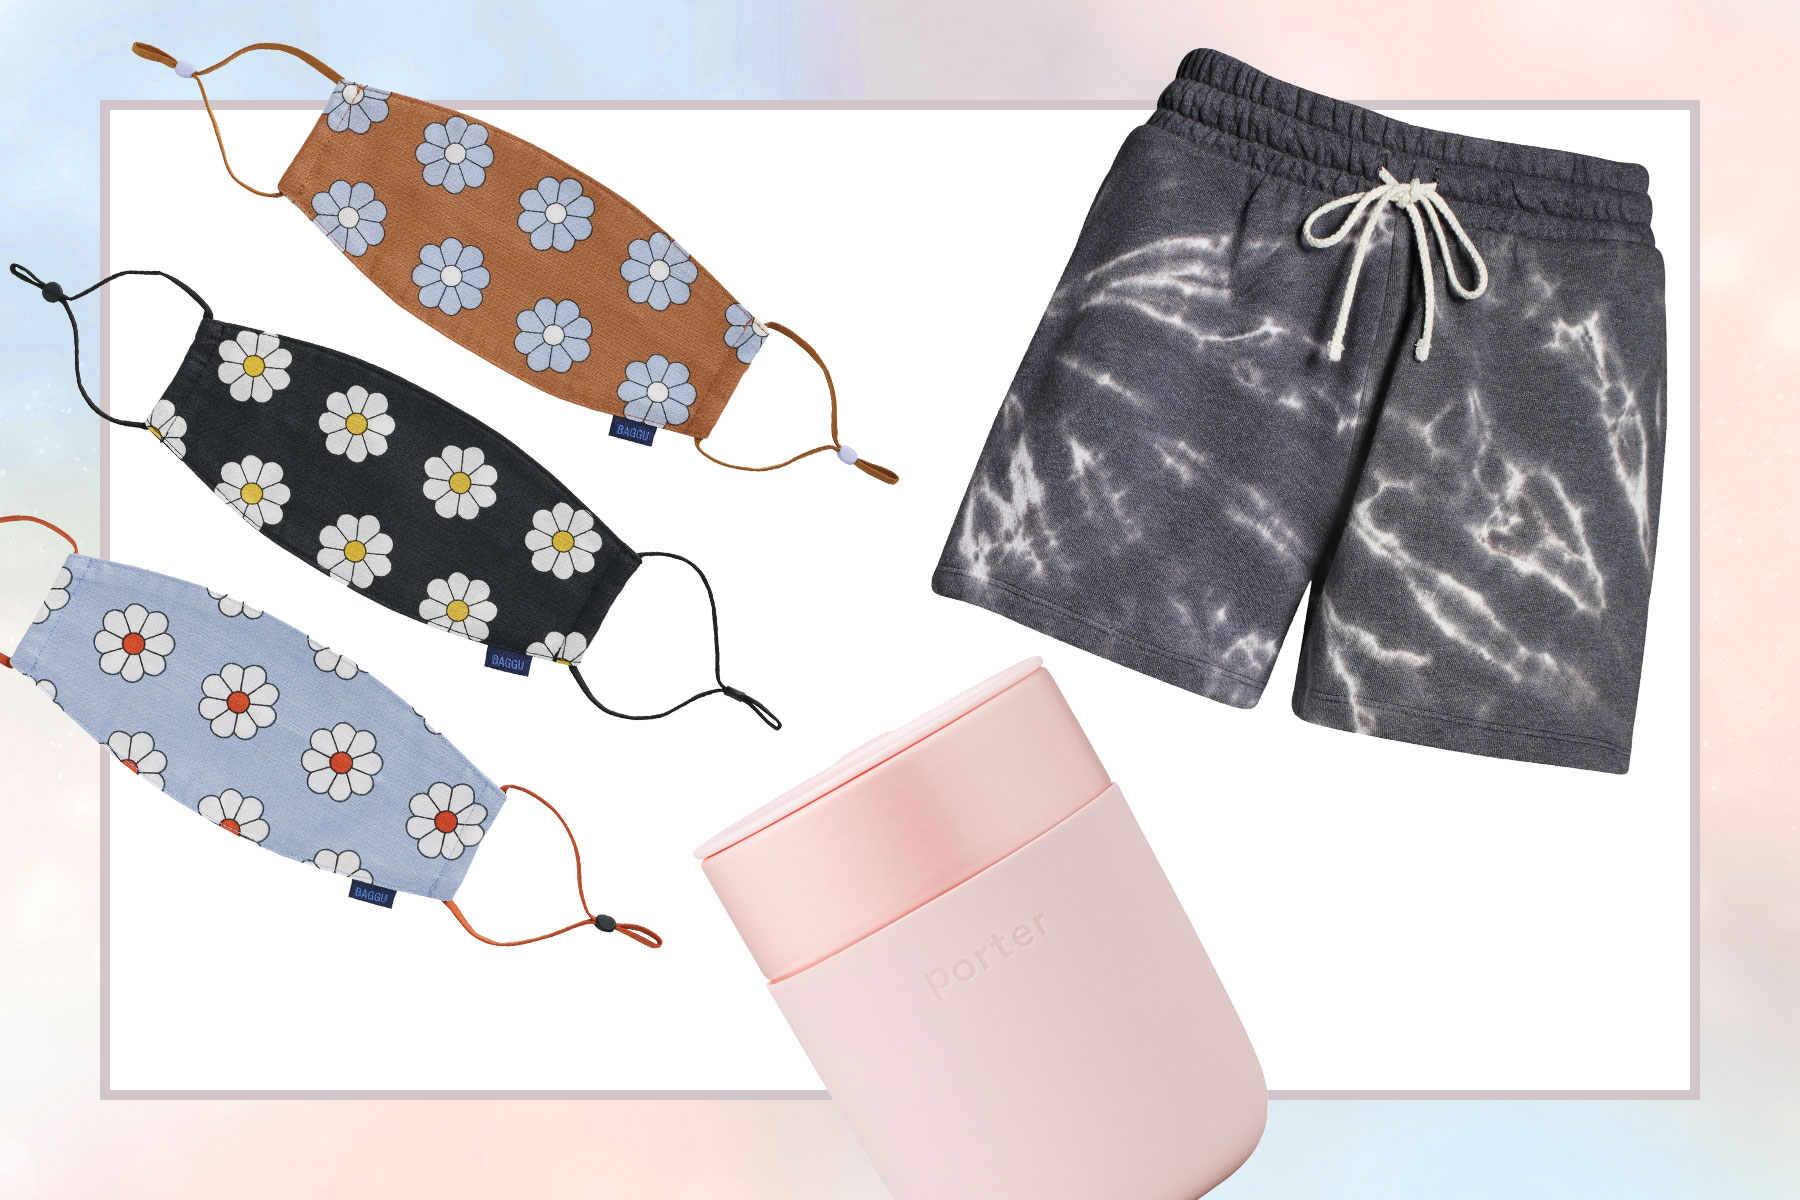 25 Last-Minute Nordstrom Gifts Under $25